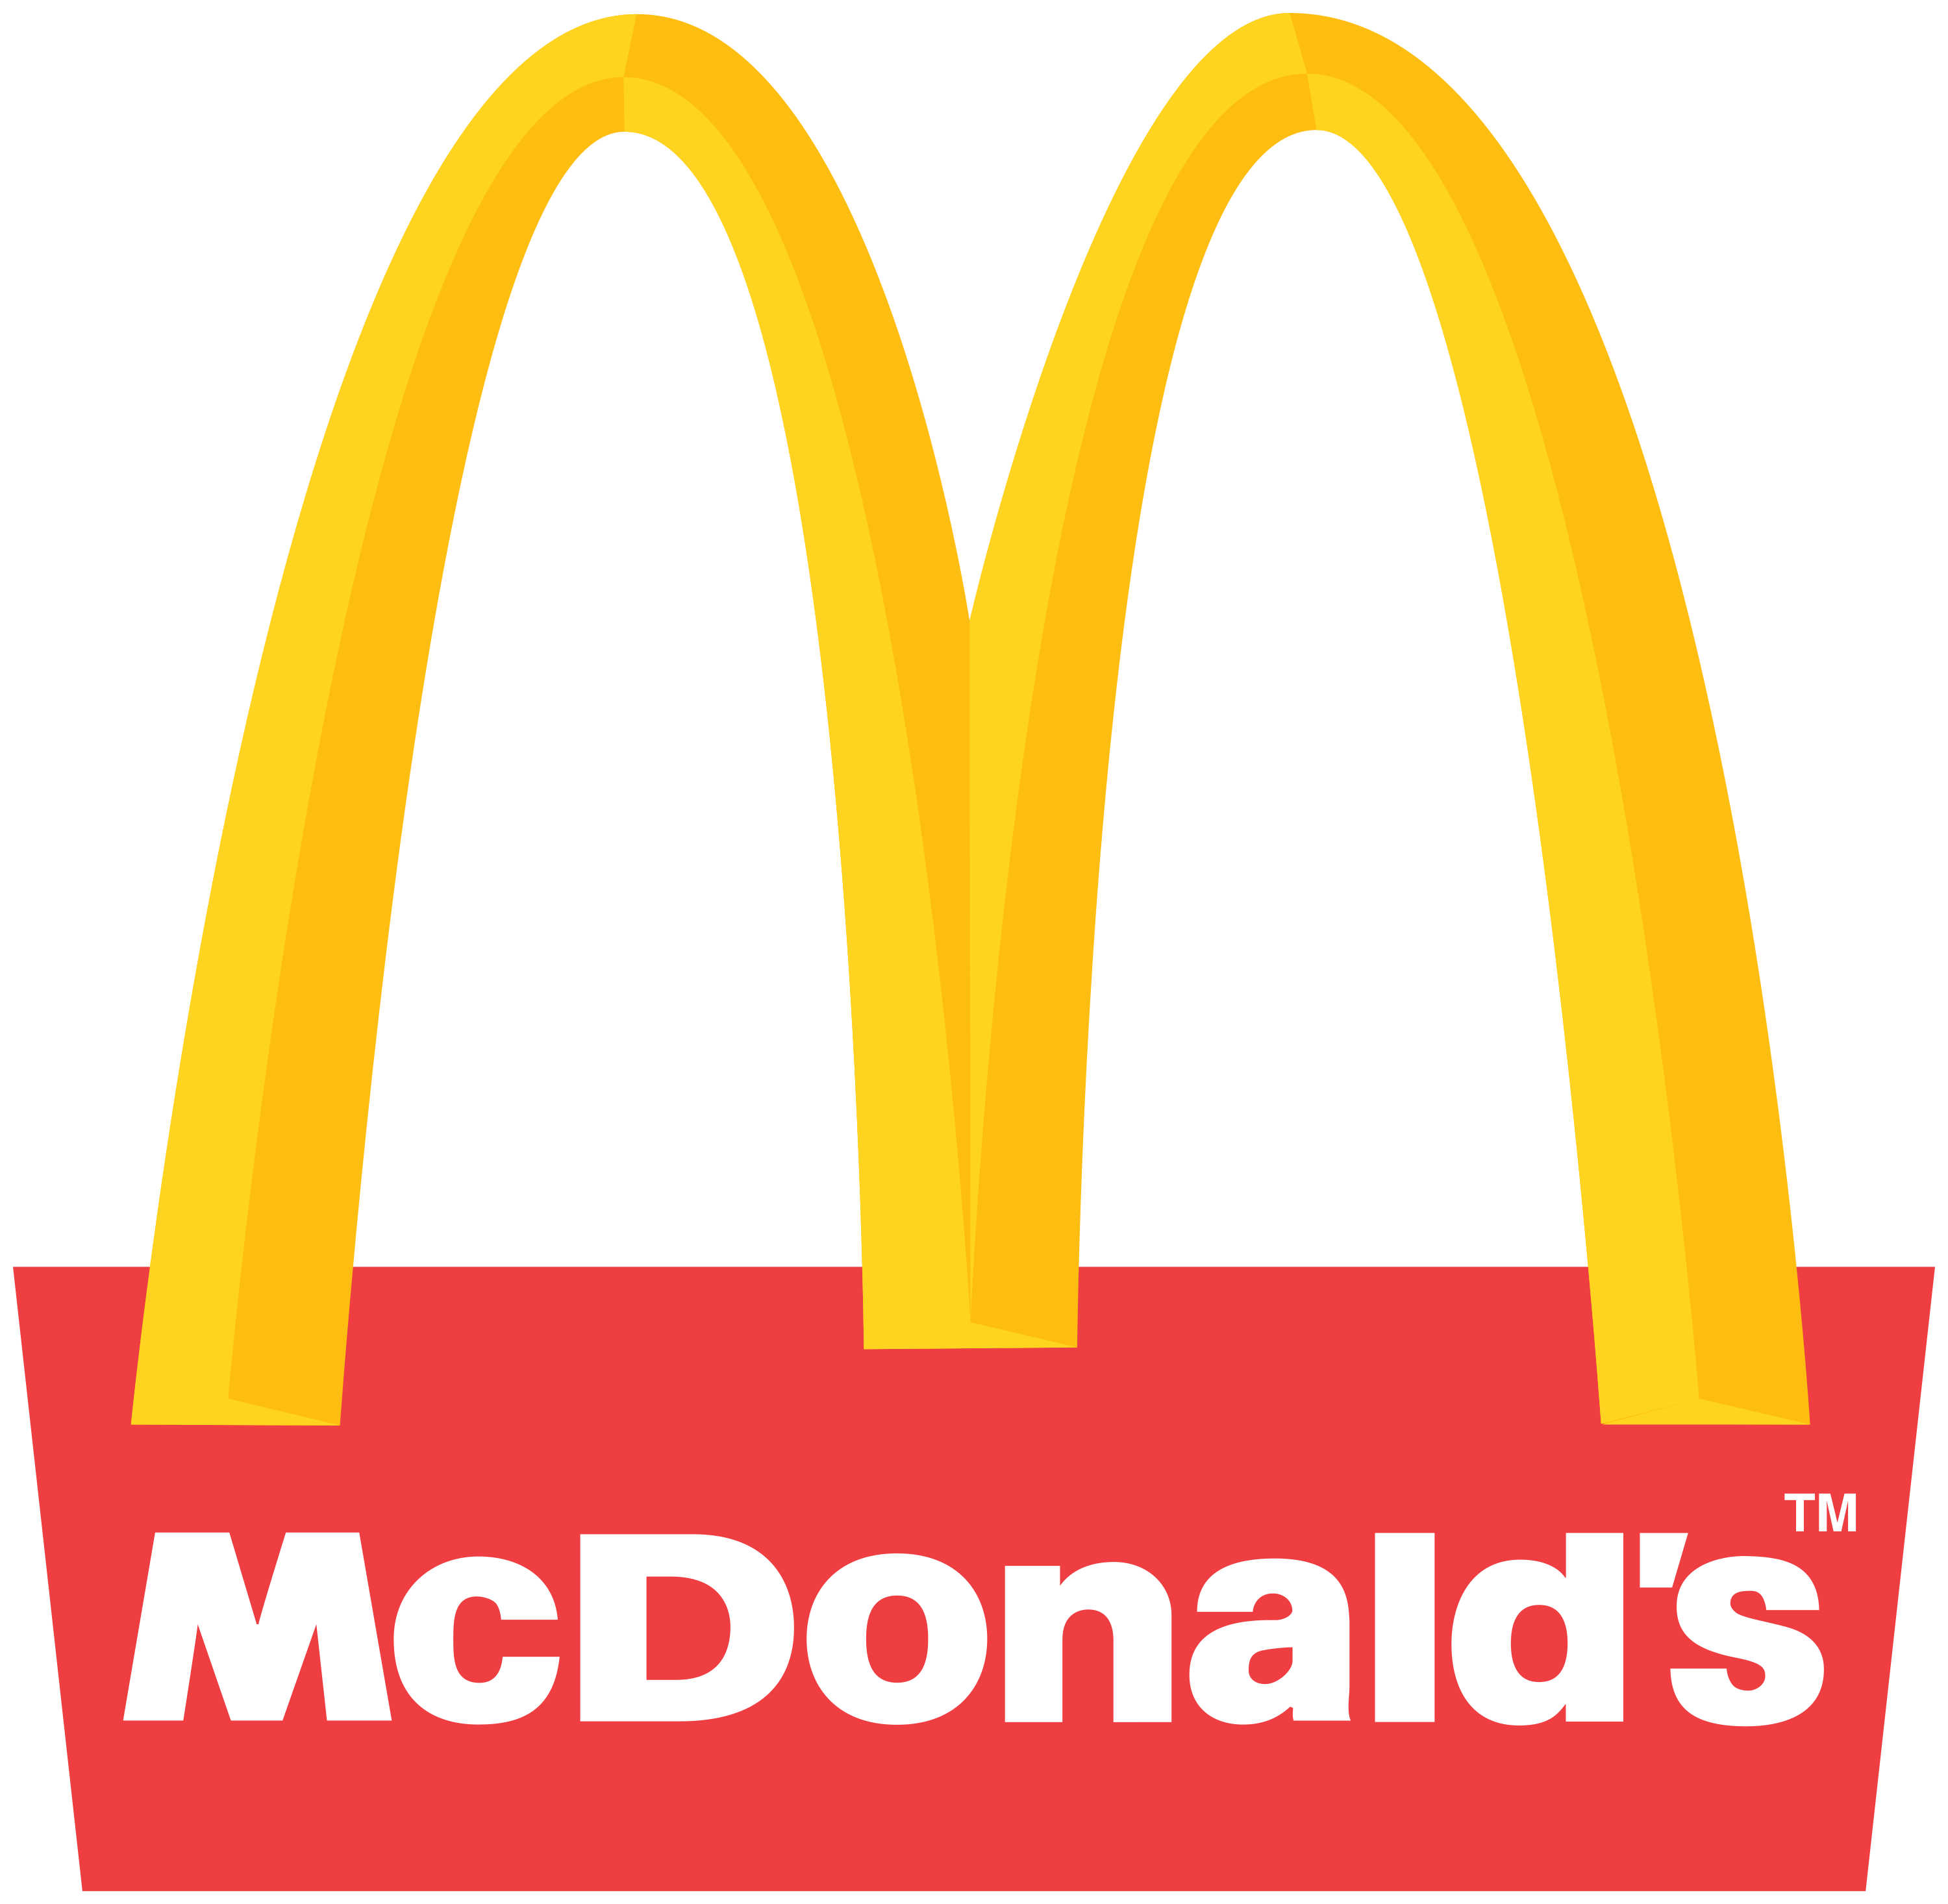 Campanha de Marketing de Influência realizada com a empresa Mc Donalds, utilizando Digital Influencers expressamente selecionados.